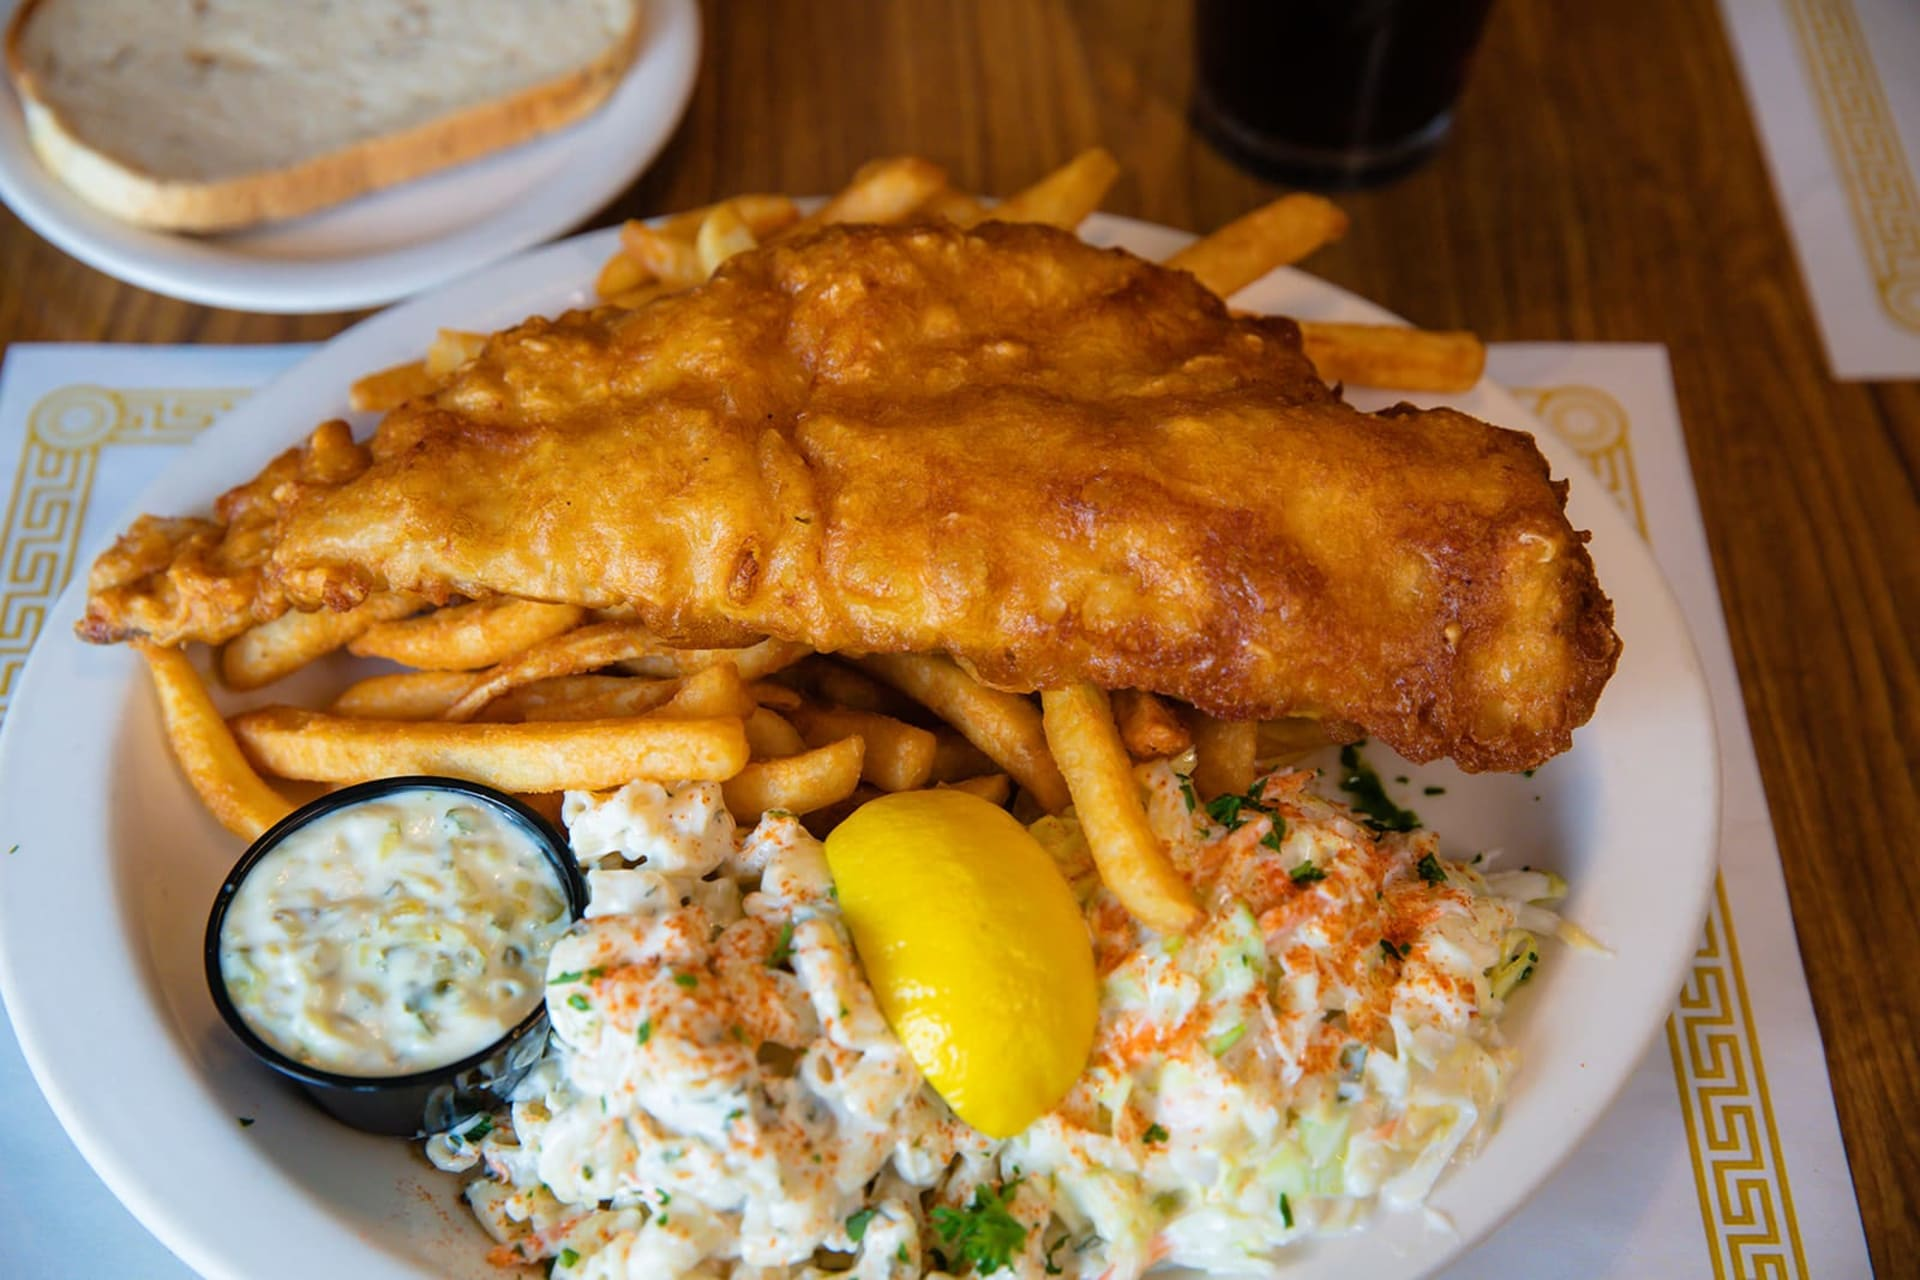 fried fish with french fries and salad